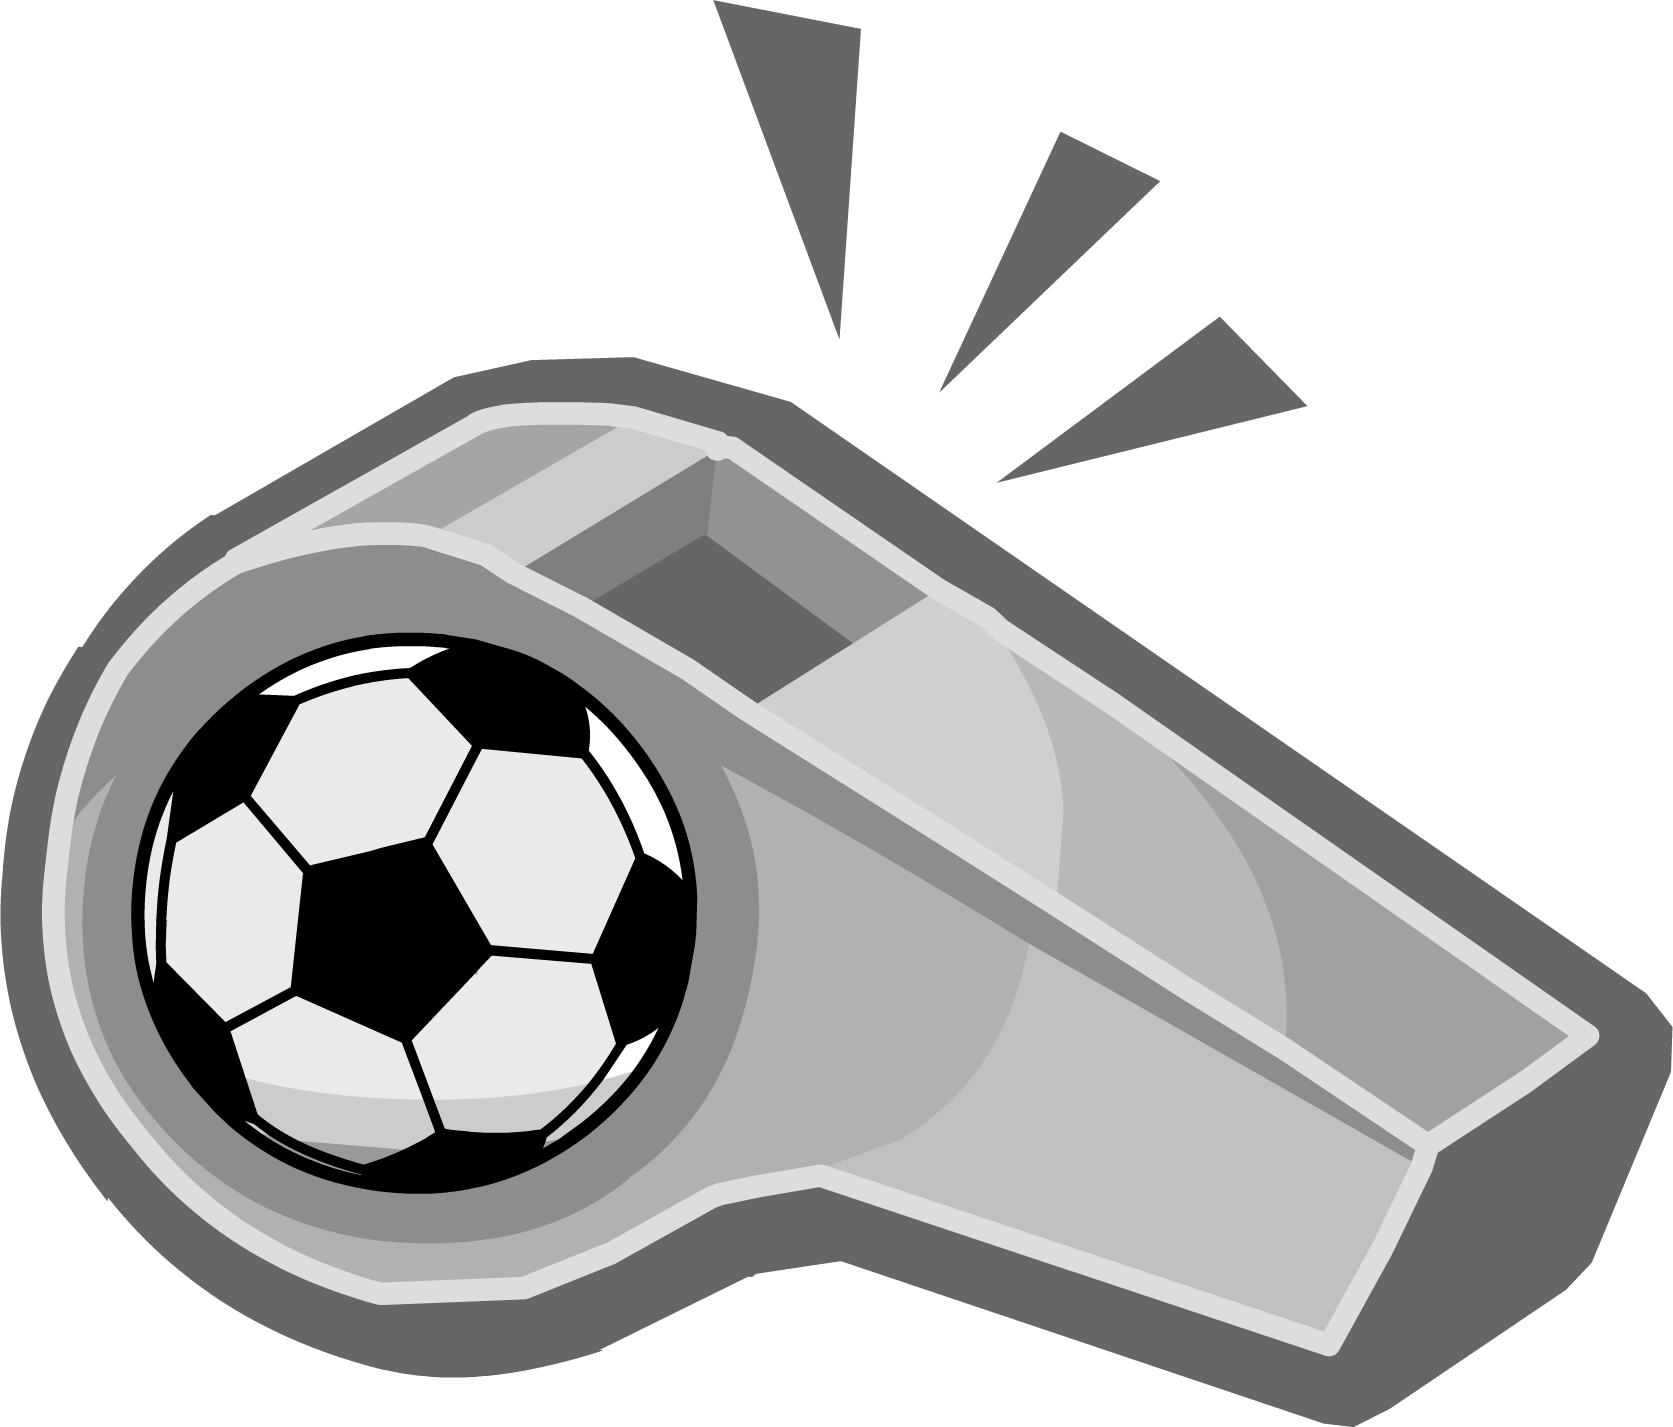 Image   Penguin Cup 2014 Emoticons Whistle.png   Club Penguin Wiki   Fandom Powered By Wikia - Whistle, Transparent background PNG HD thumbnail